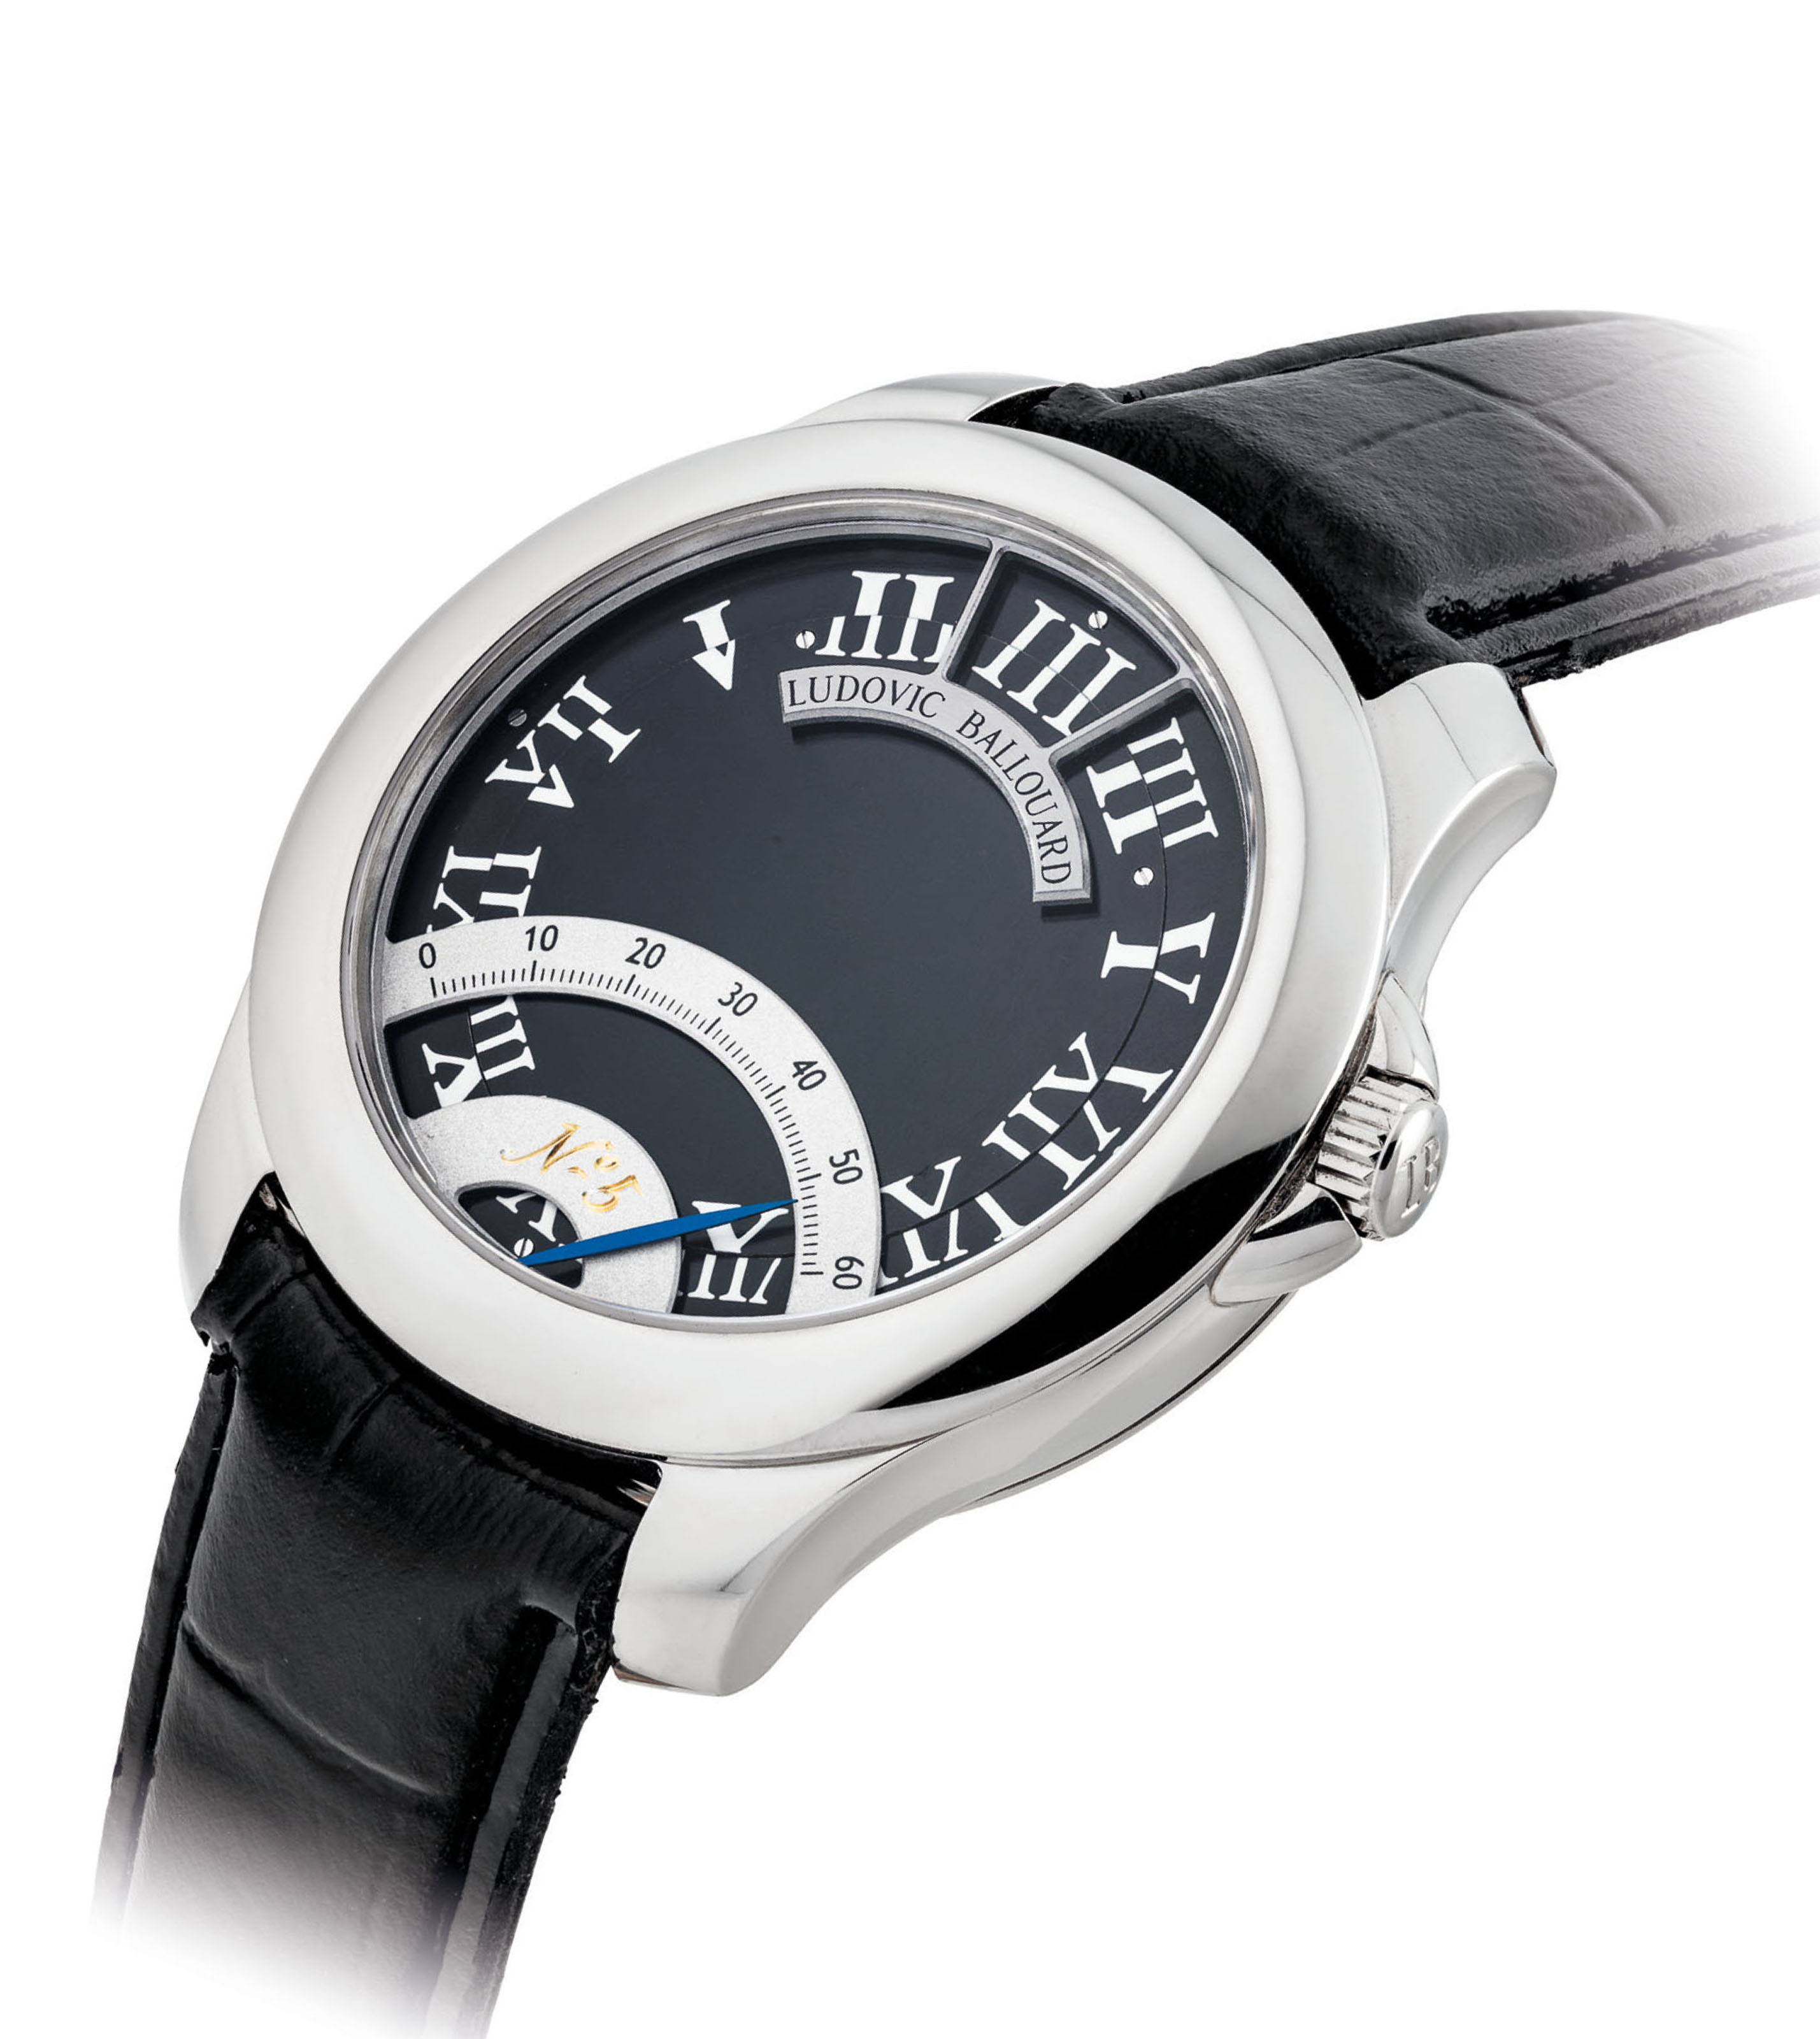 LUDOVIC BALLOUARD. A VERY FINE AND UNUSUAL PLATINUM WRISTWATCH WITH ROTATING DIAL AND RETROGRADE MINUTES